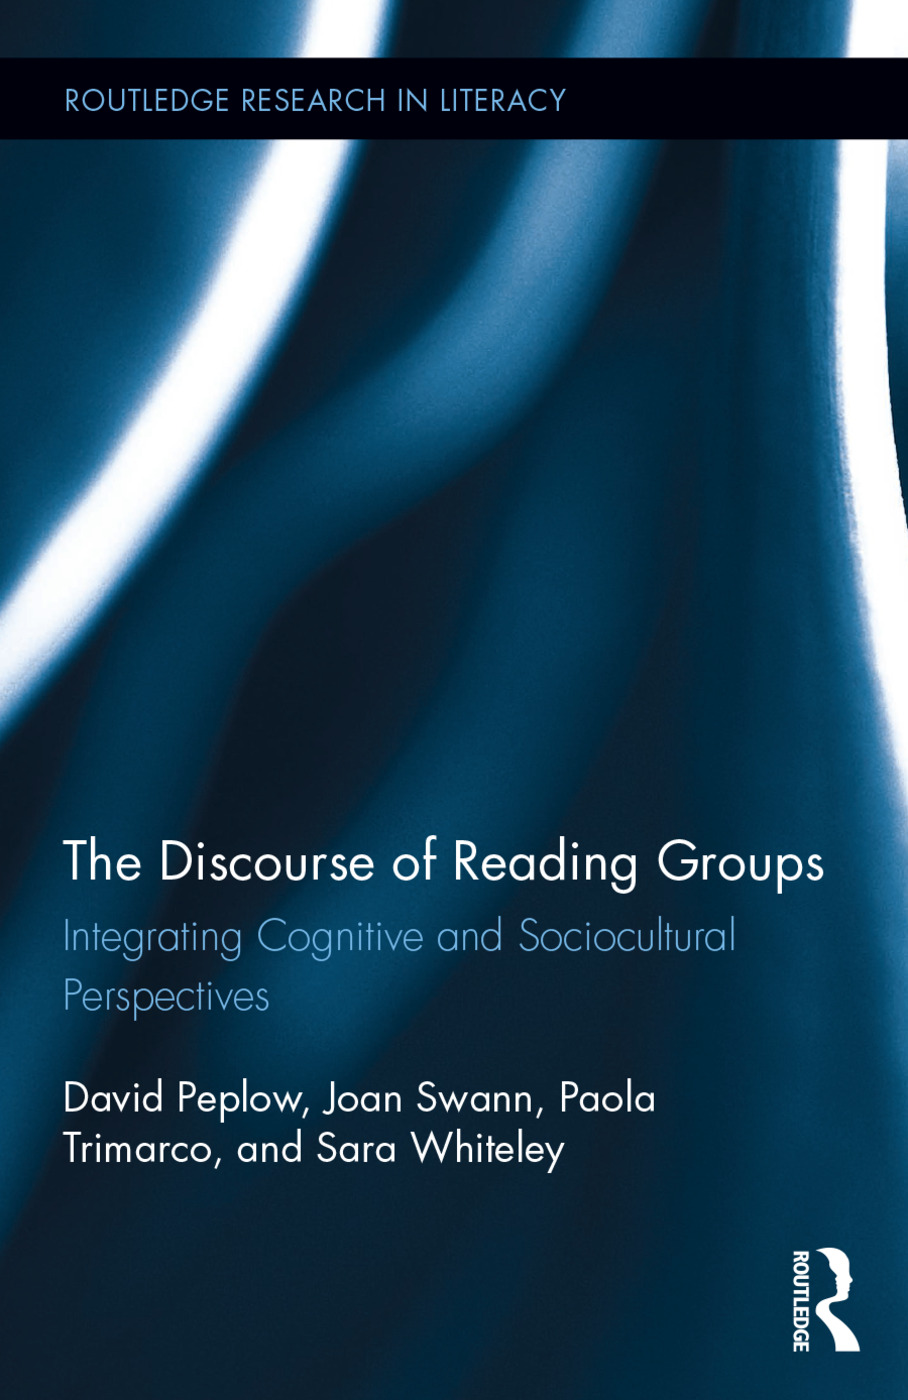 The Discourse of Reading Groups: Integrating Cognitive and Sociocultural Perspectives book cover